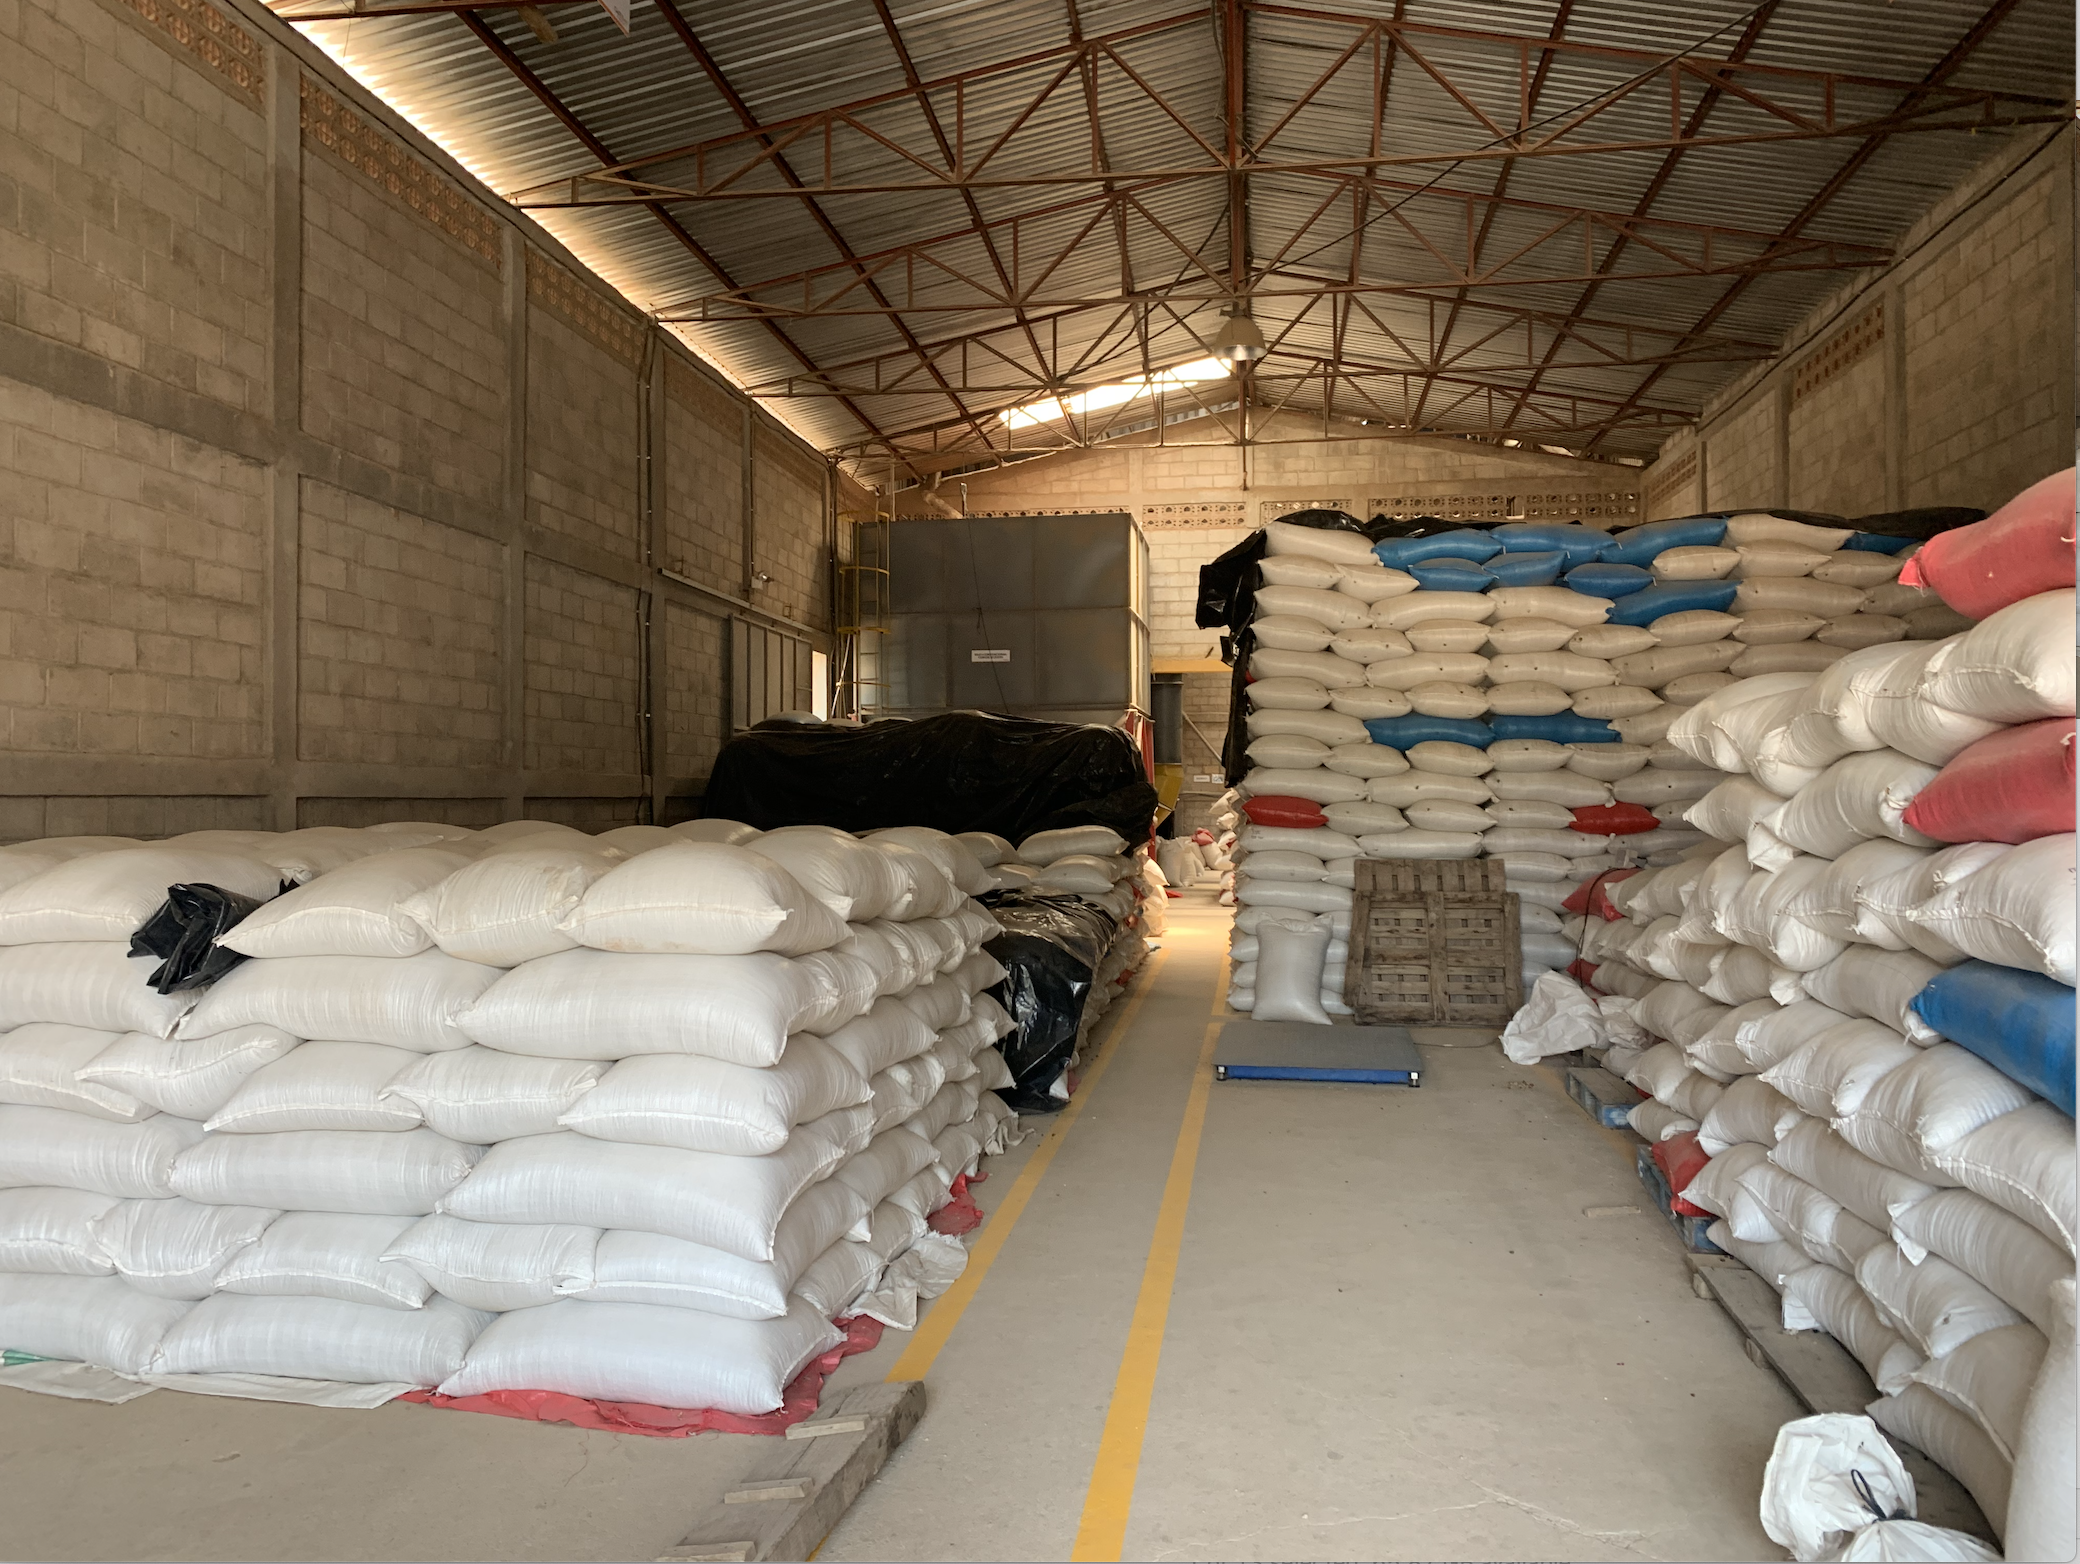 Storing some coffees, ready for export preparation